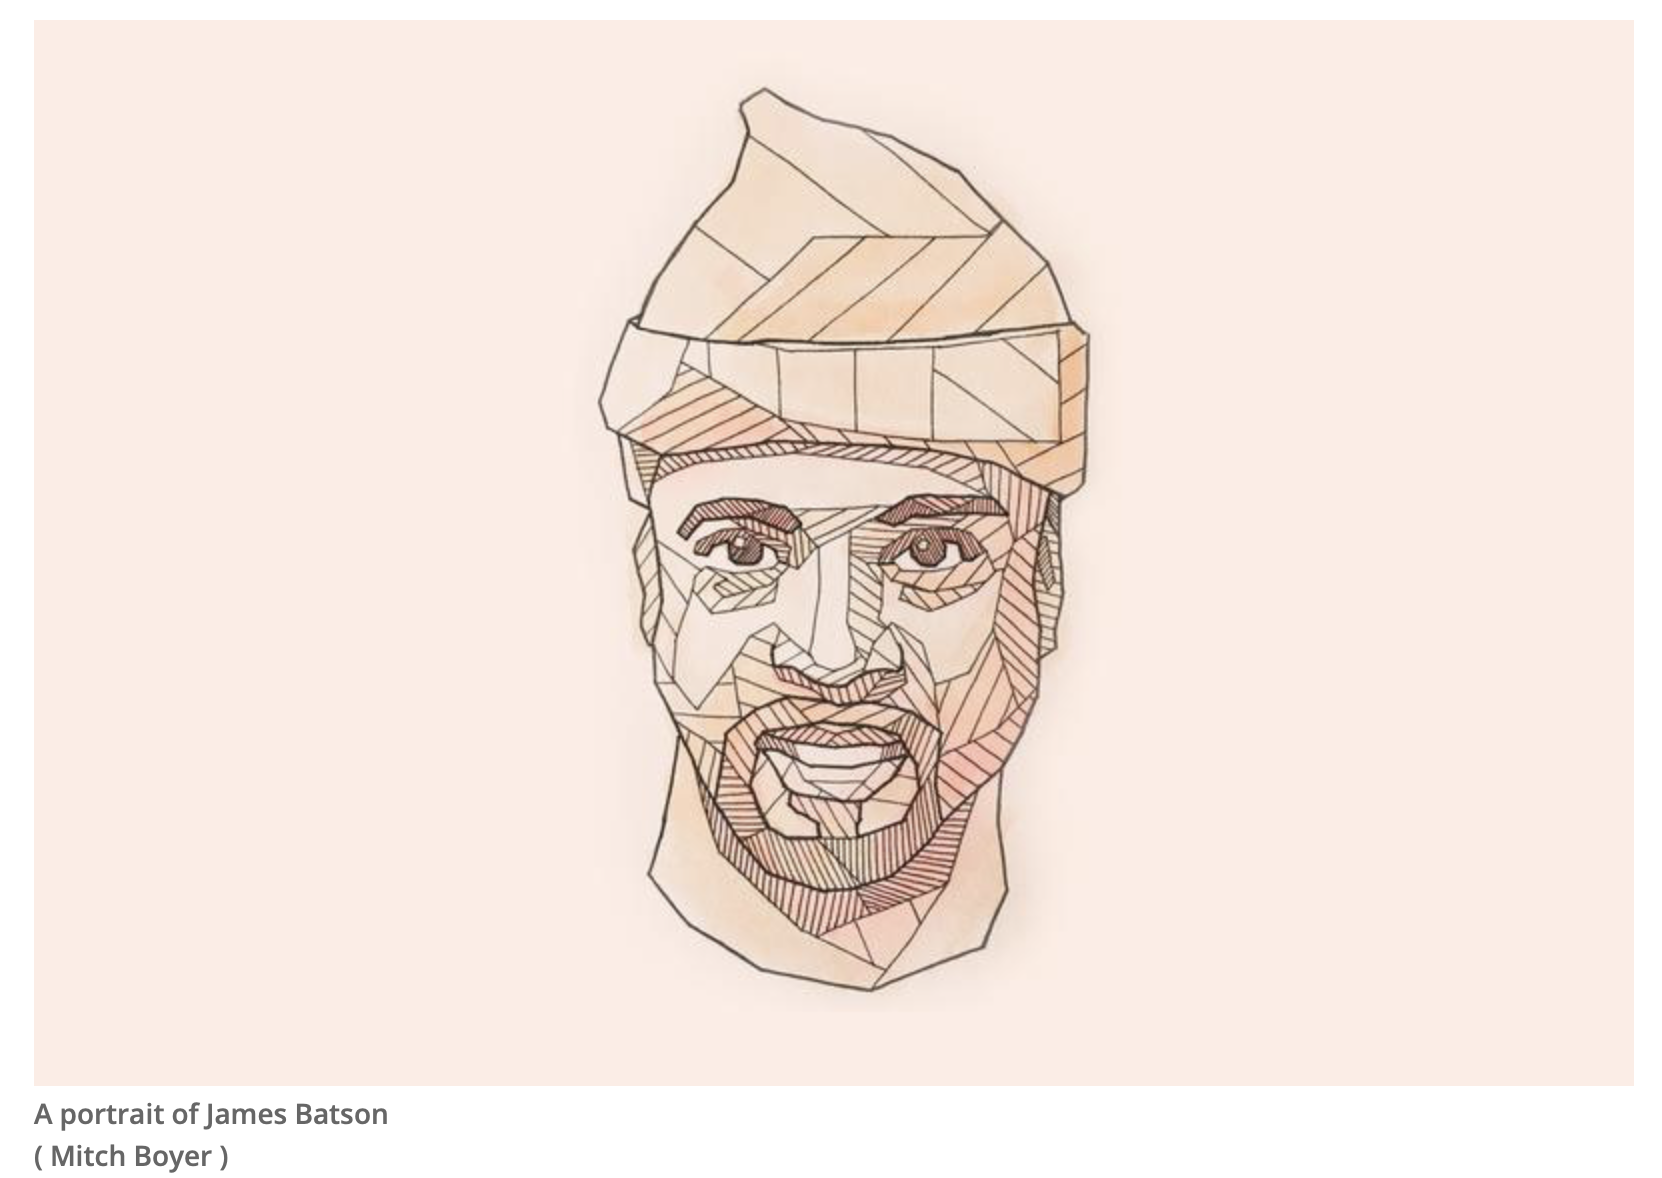 Screenshot of James Batson for the audio broadcast More Perfect from WNYC.